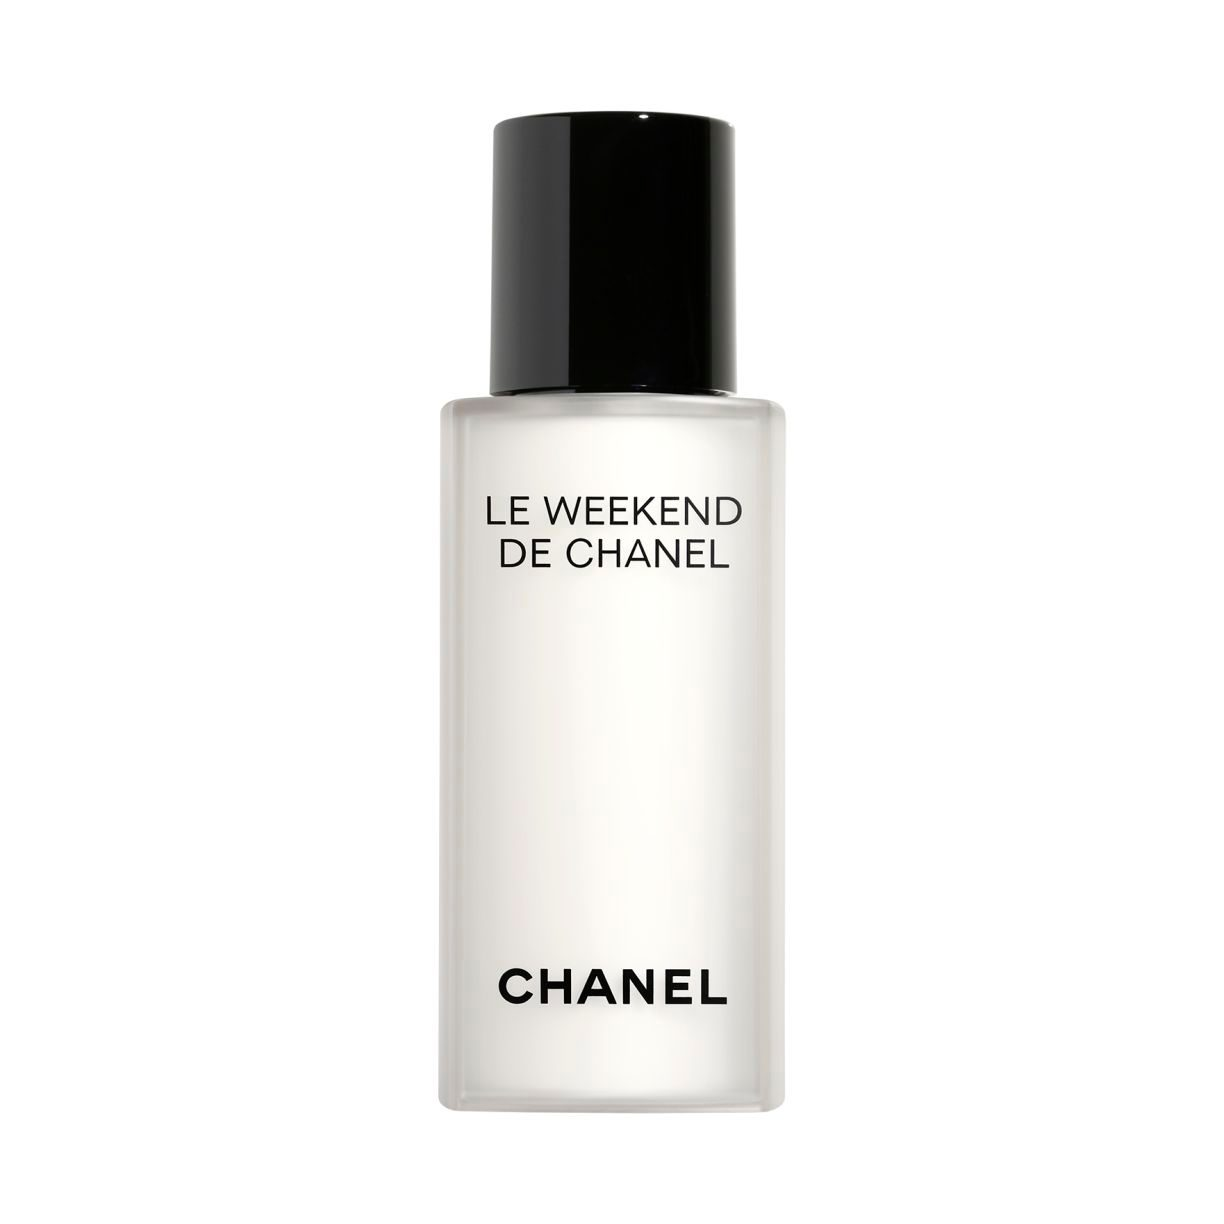 LE WEEKEND DE CHANEL TRATTAMENTO WEEKEND EFFETTO PELLE NUOVA 50ml